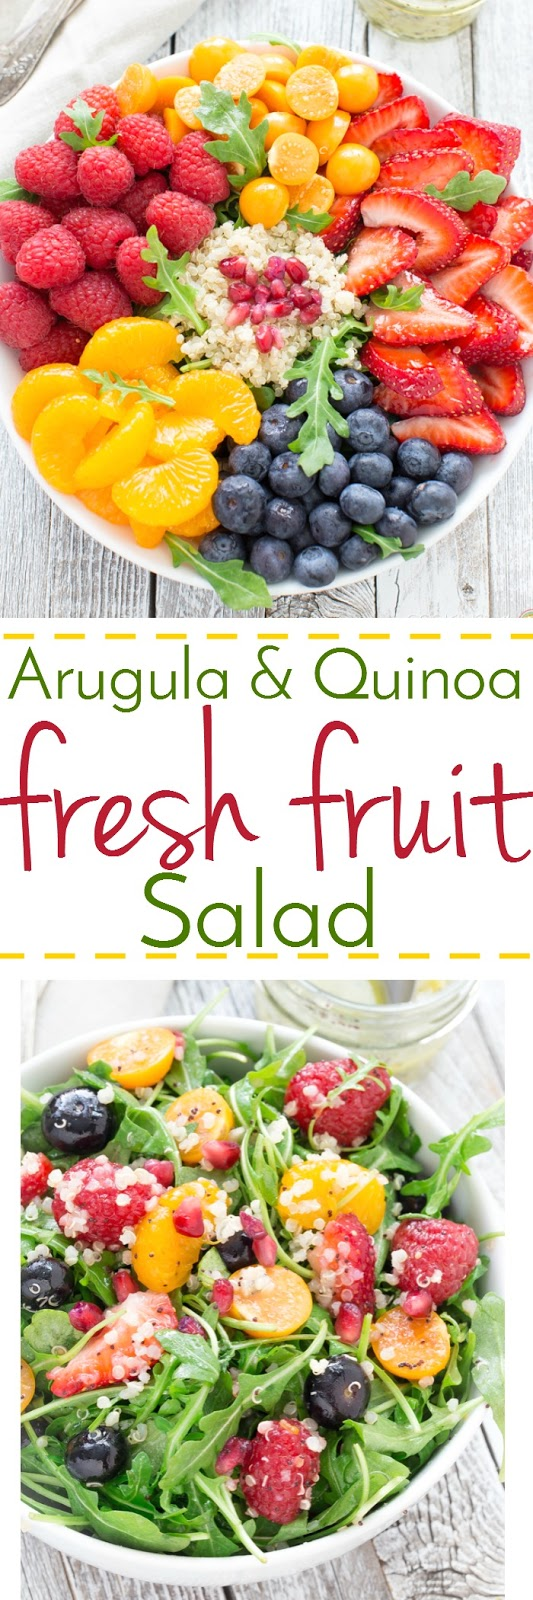 Arugula and Quinoa Salad with Fresh Fruit